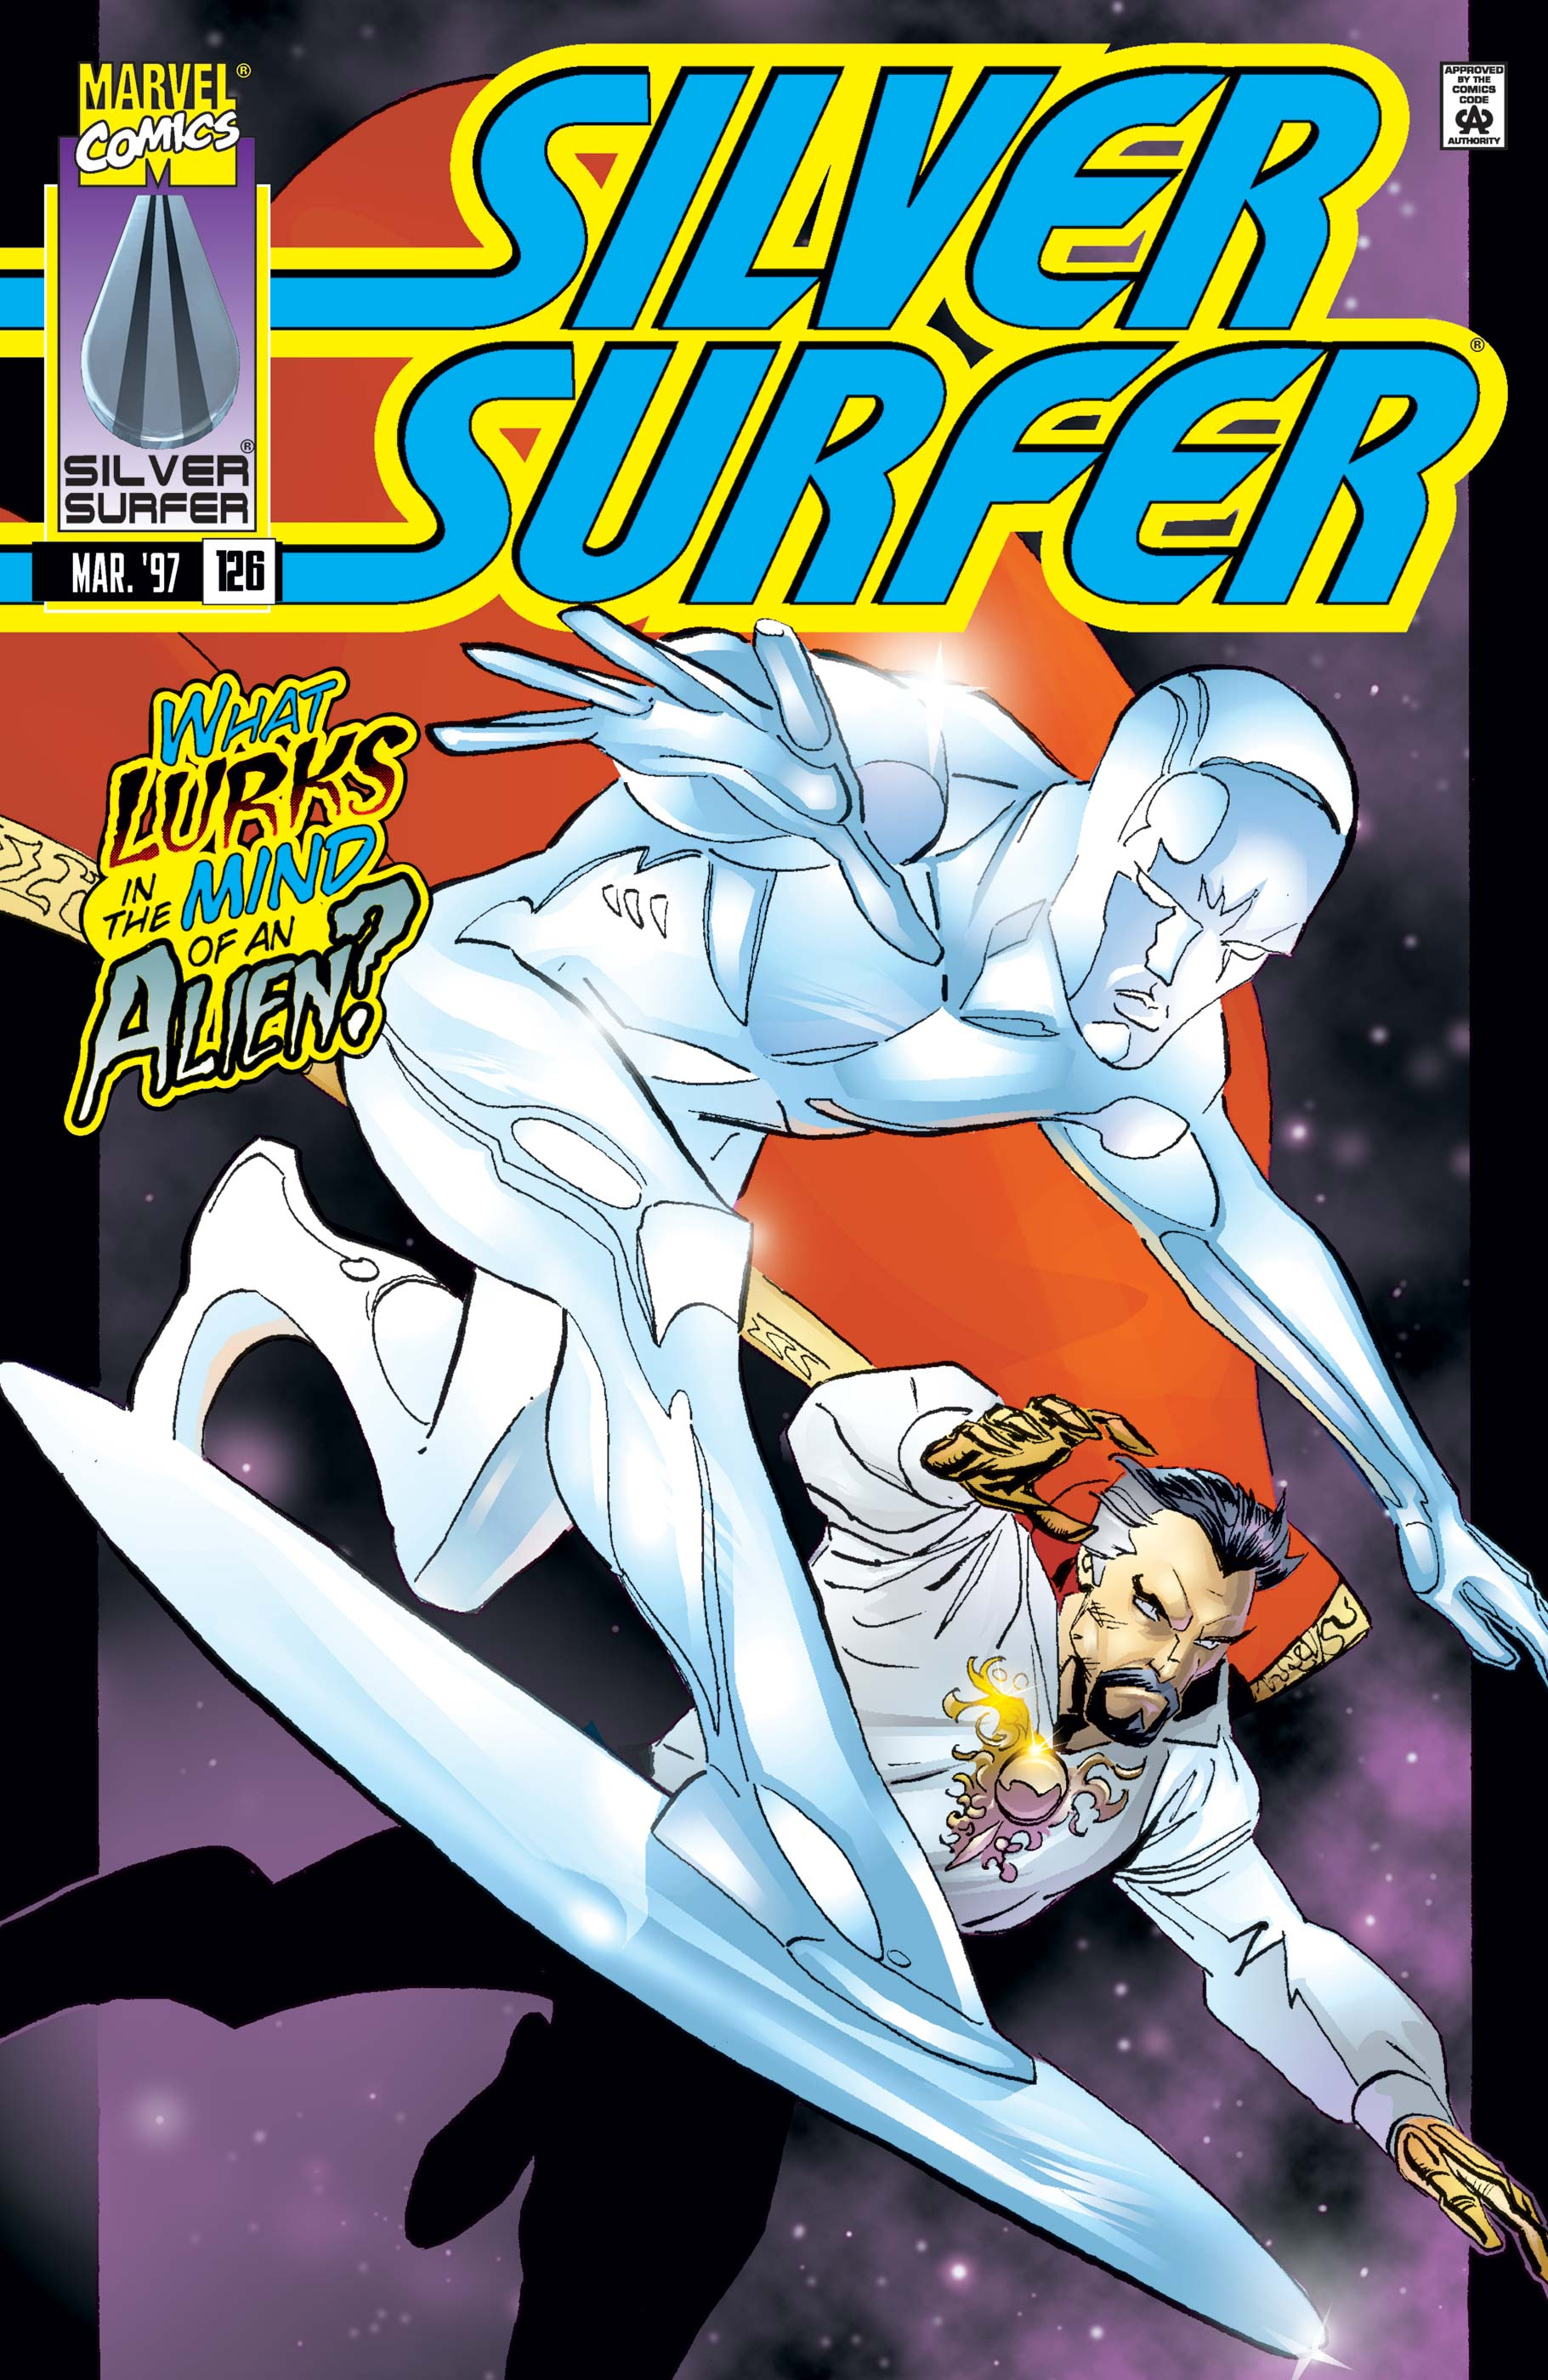 Silver Surfer (1987) #126